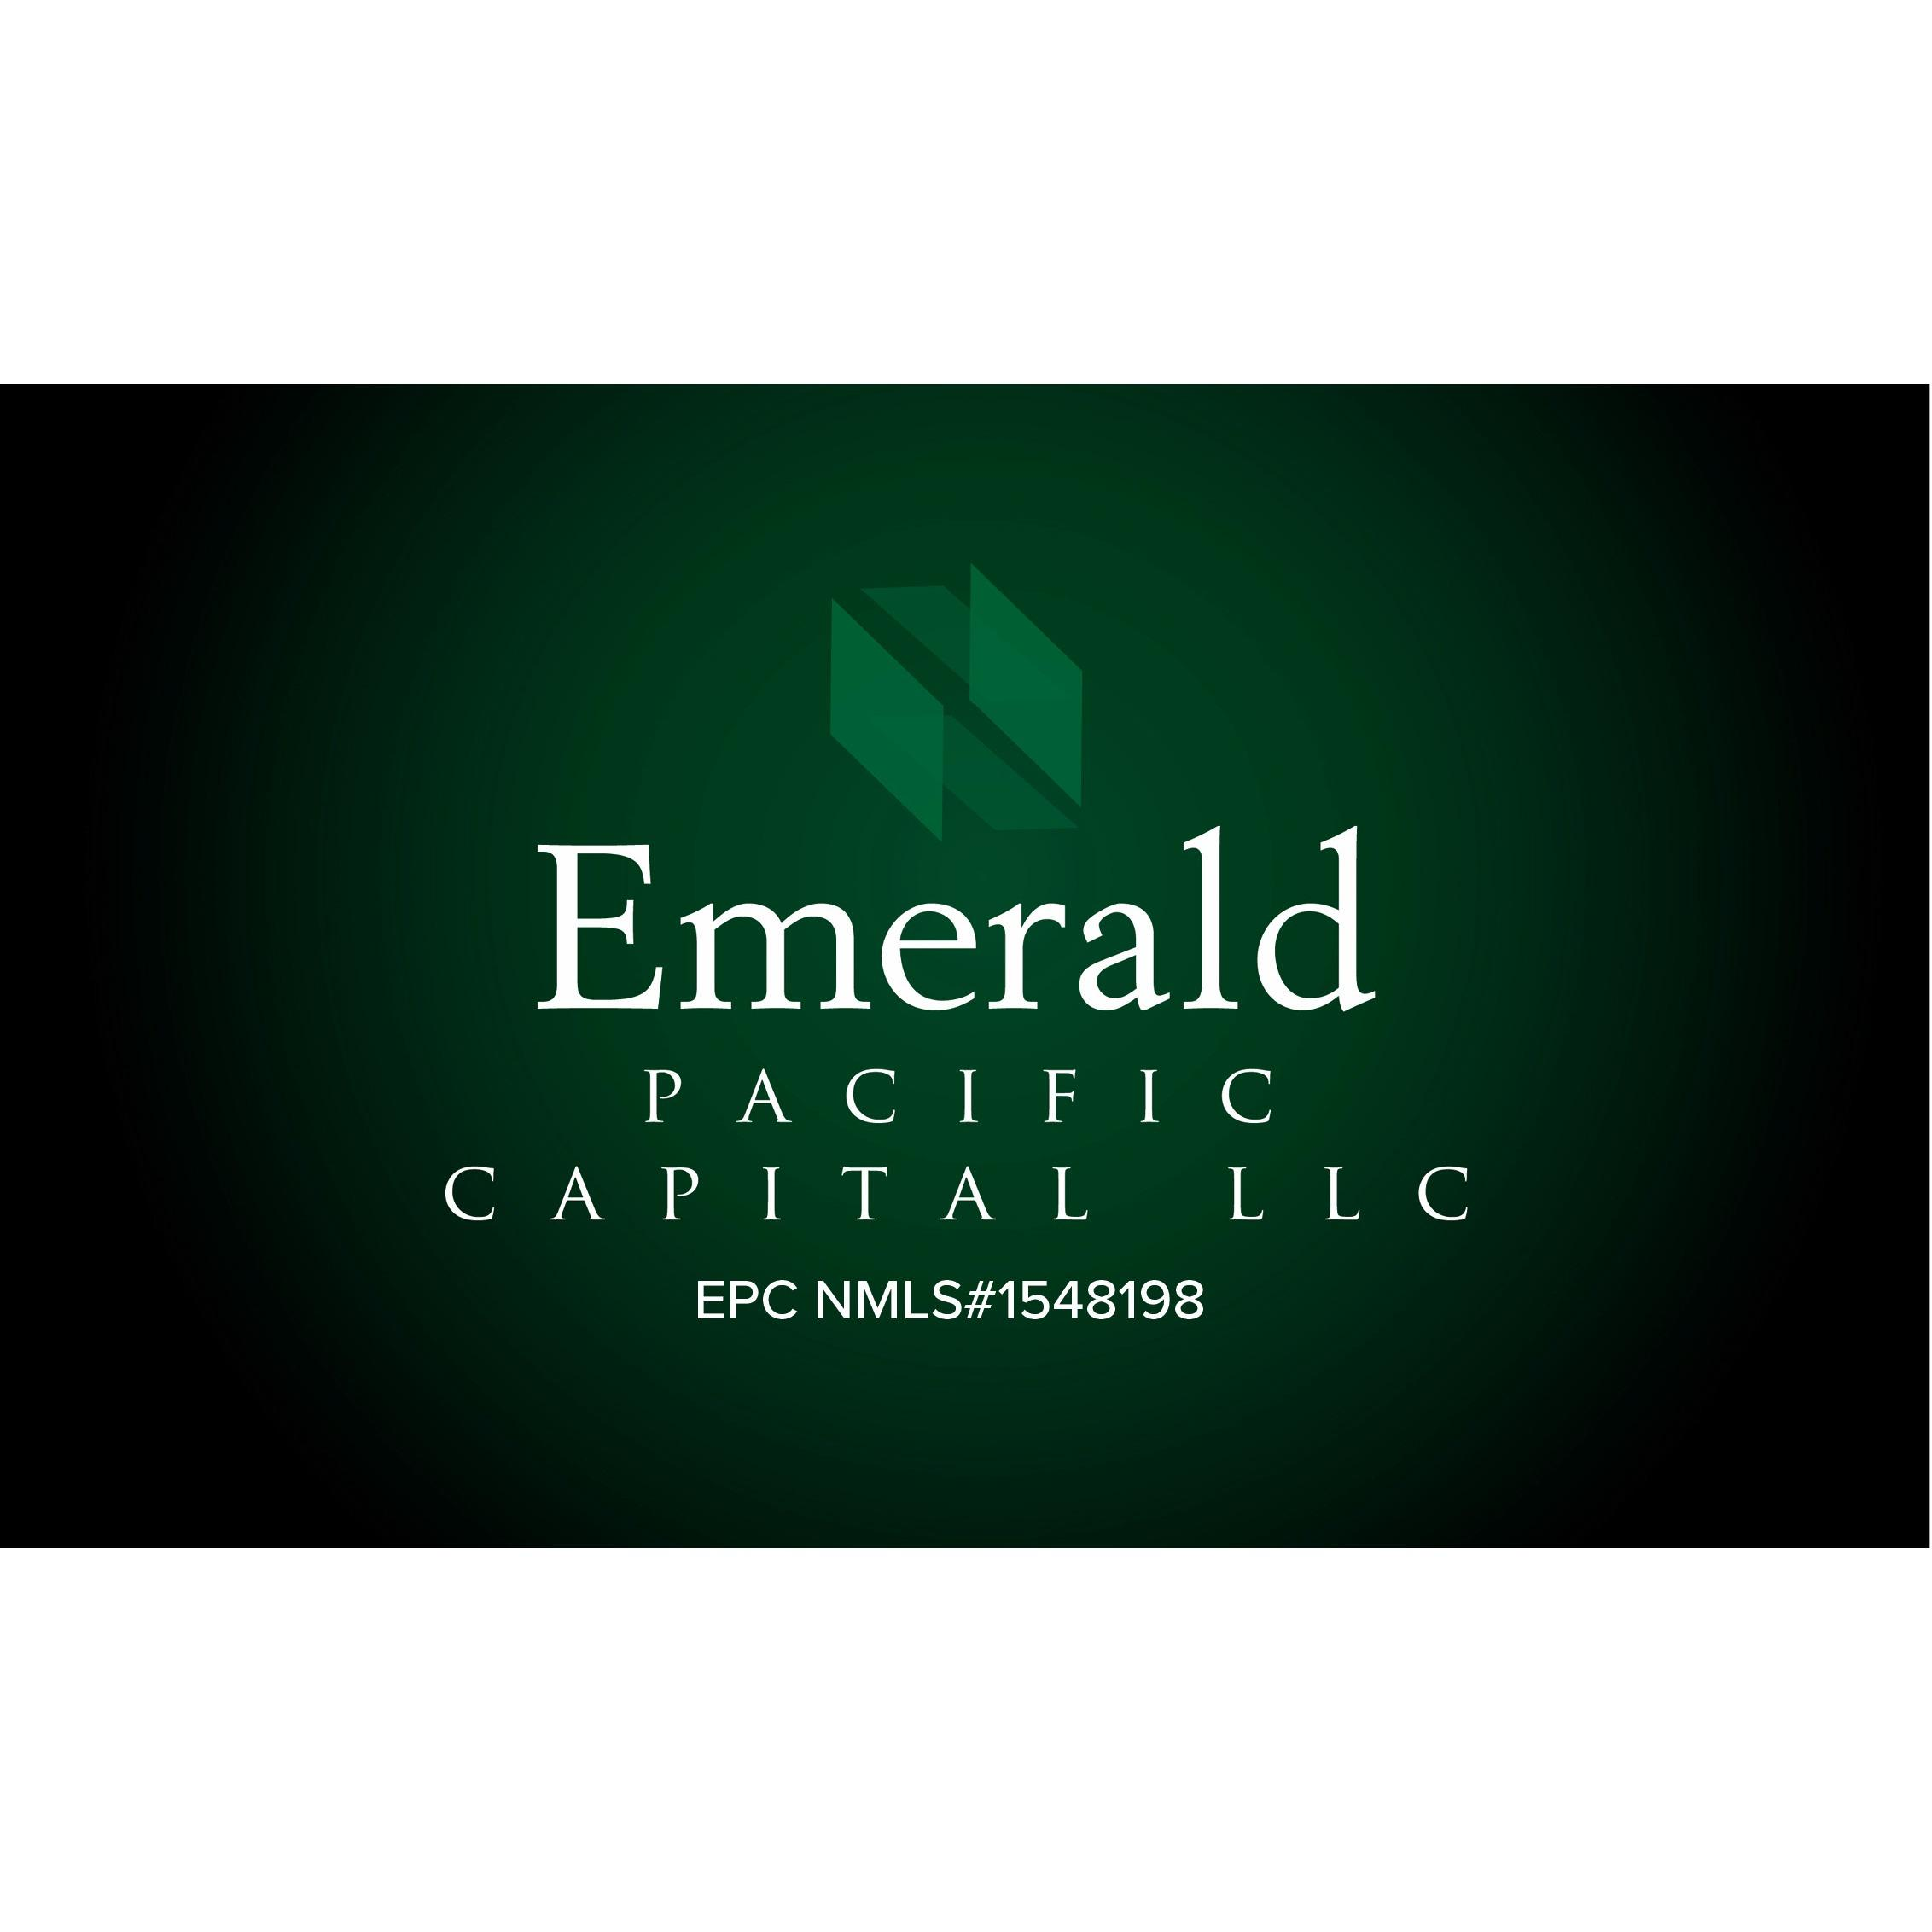 Emerald Pacific Capital LLC